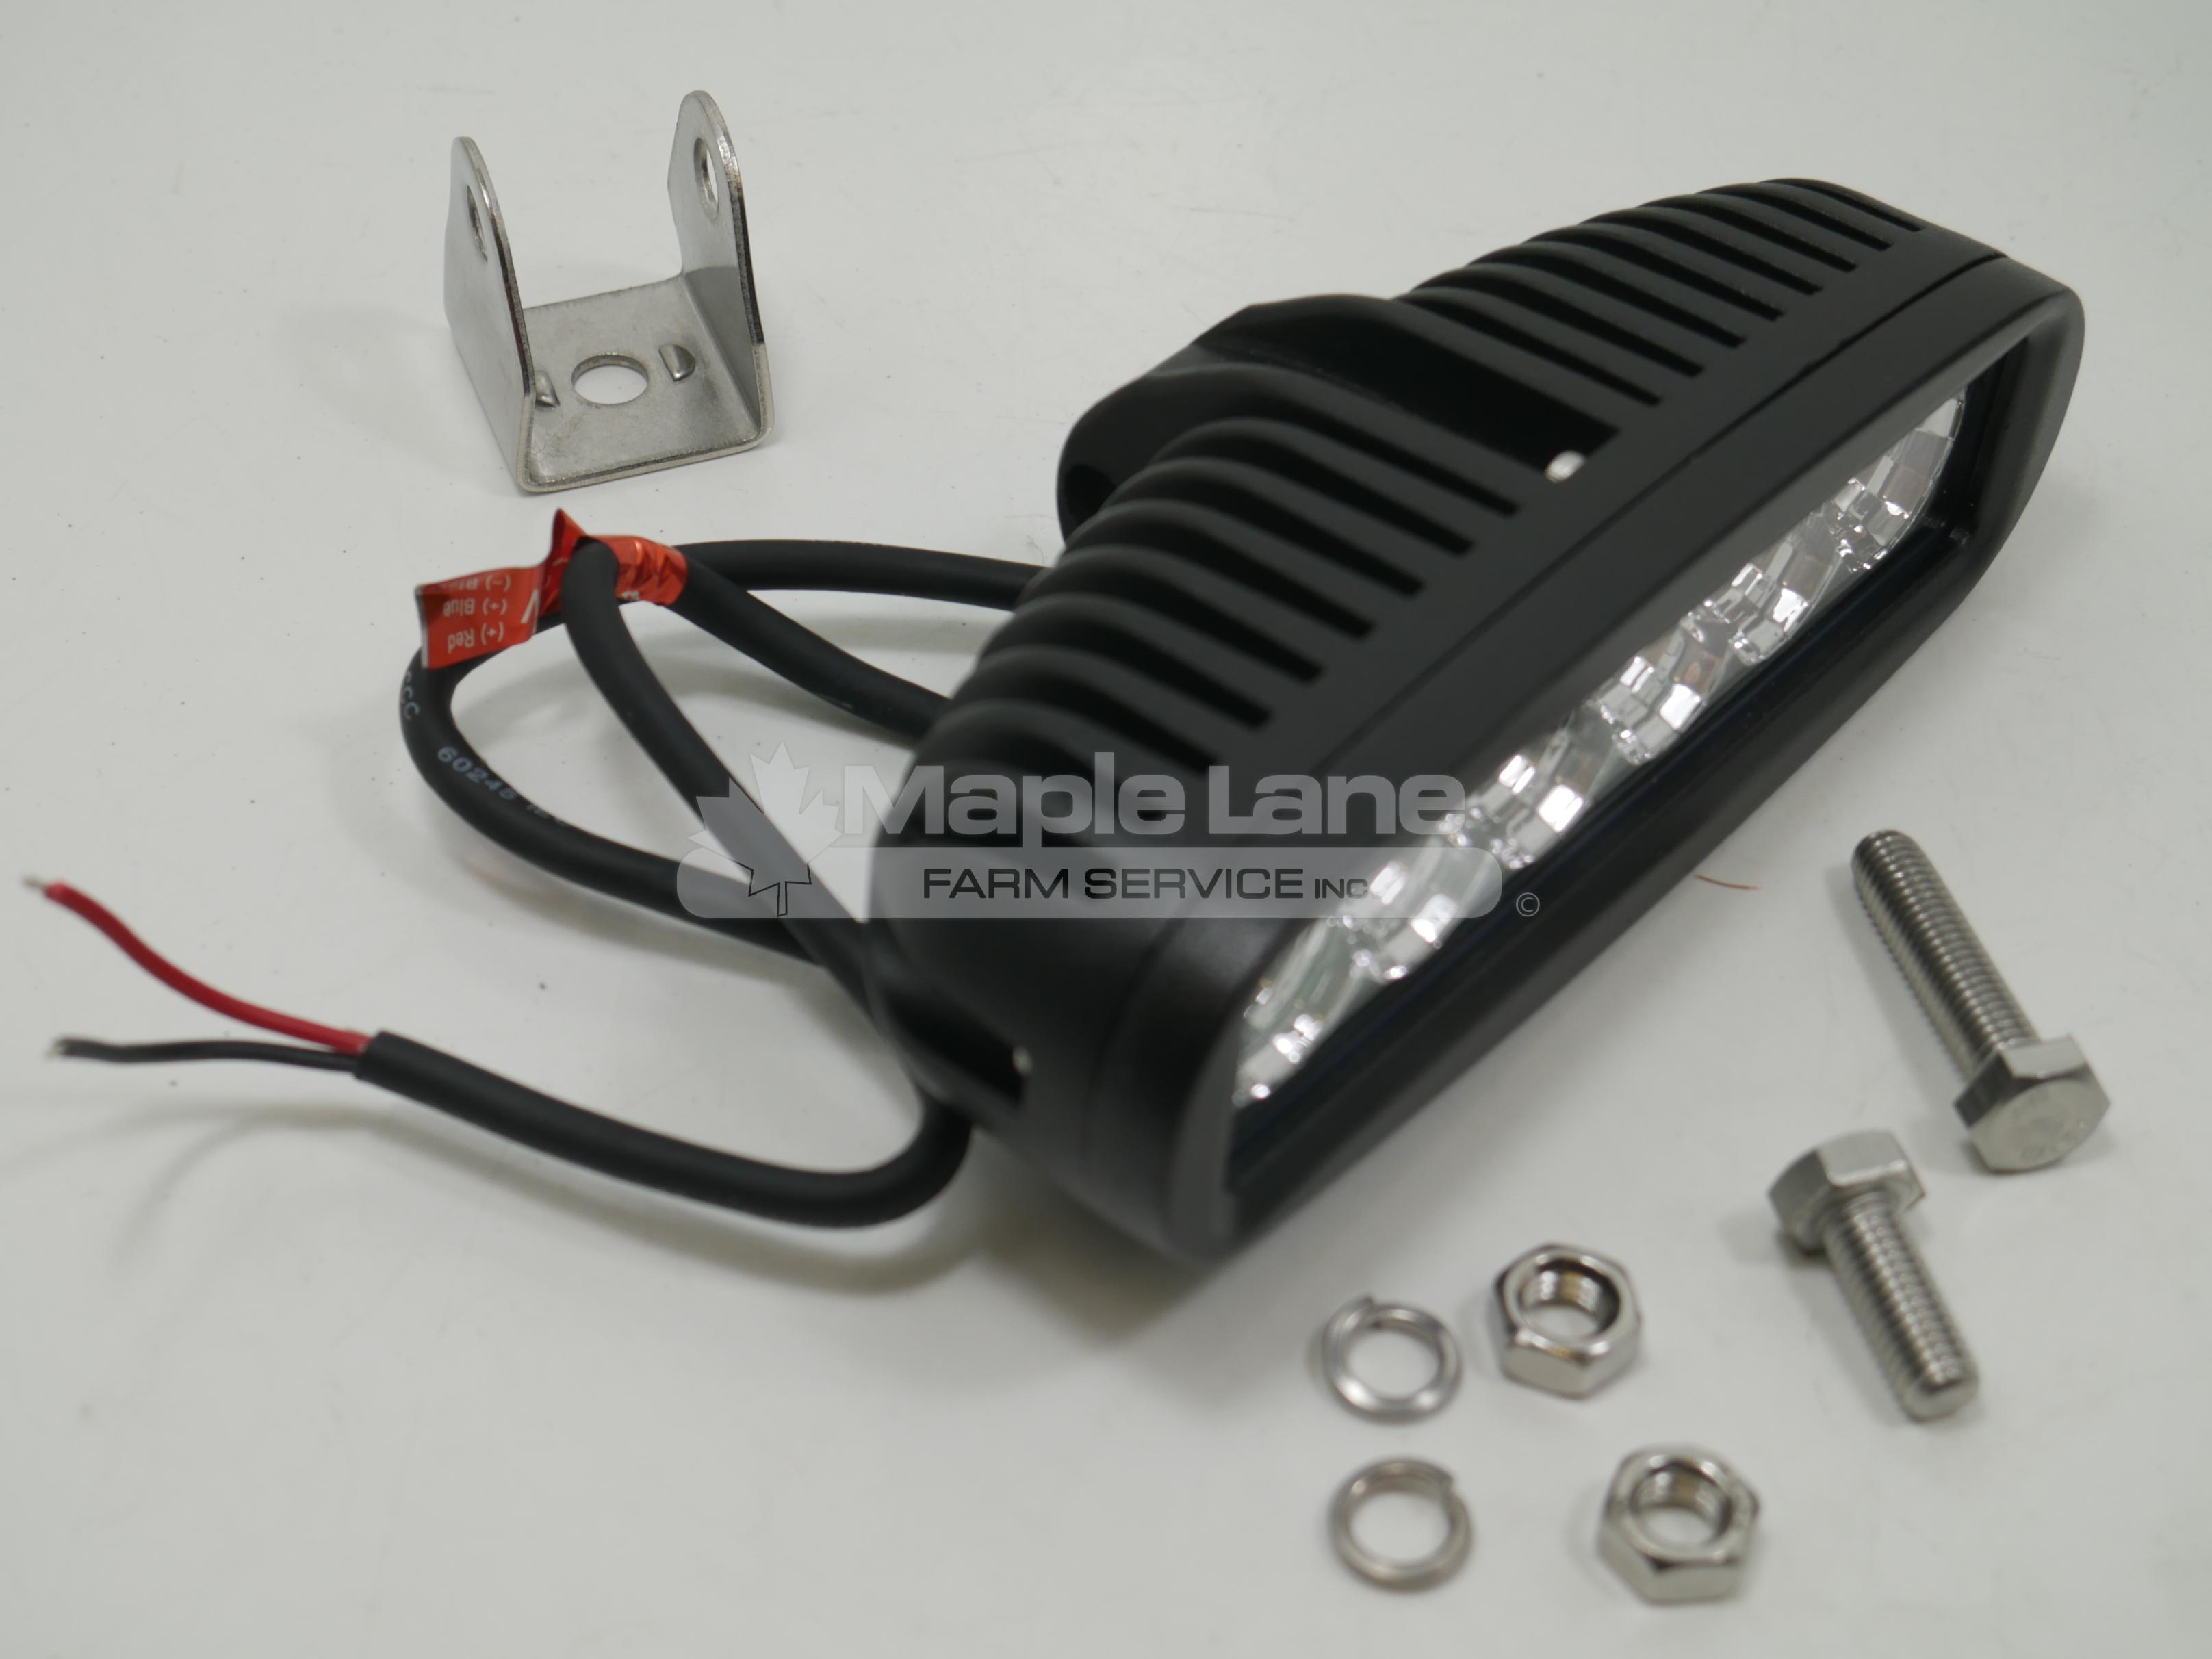 sm-6180 18w led light